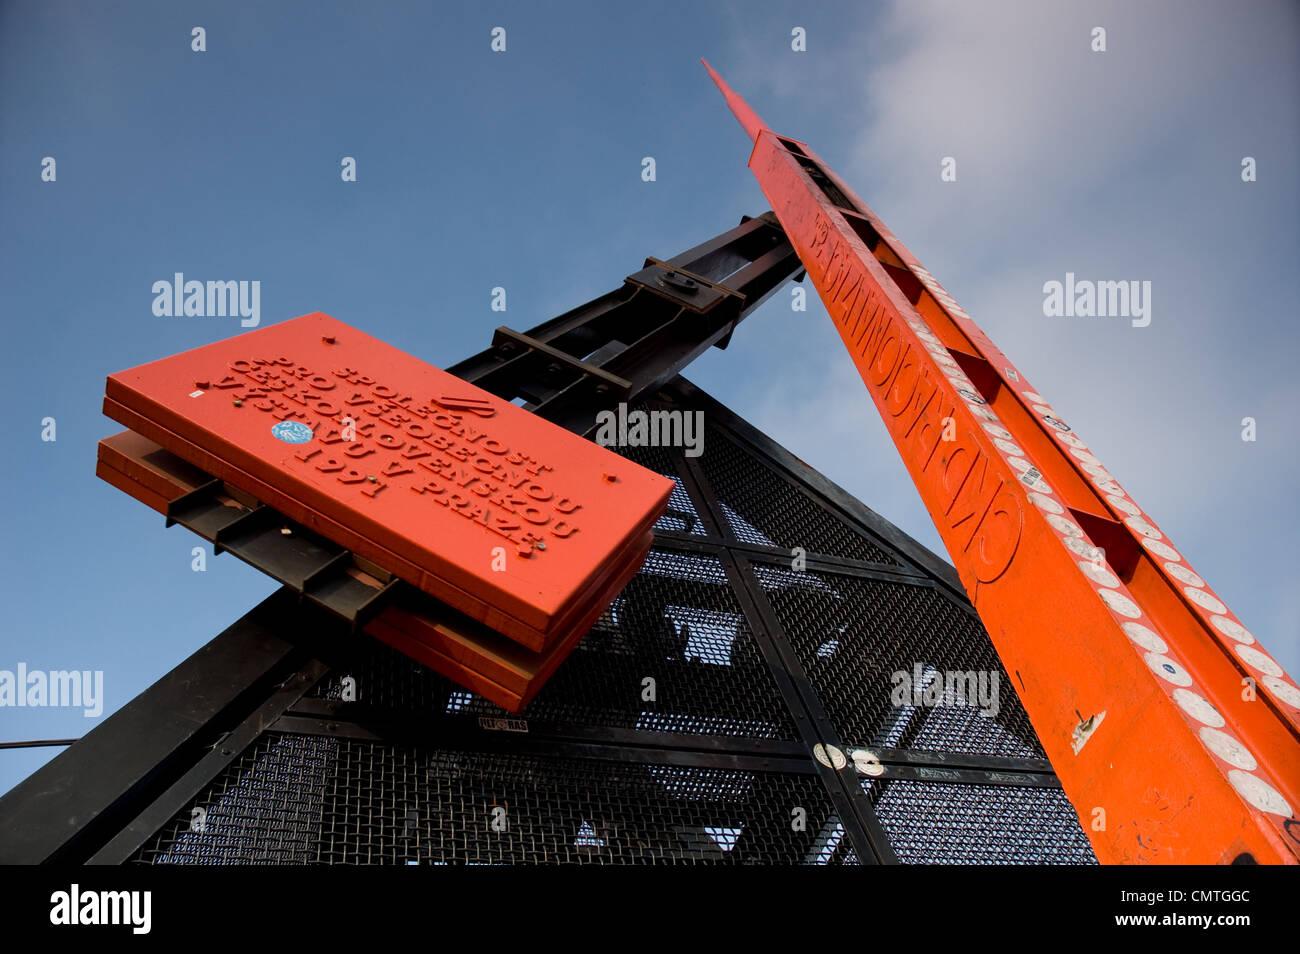 The metronome at Letna Hill in Prague, Czecz Republic - Stock Image